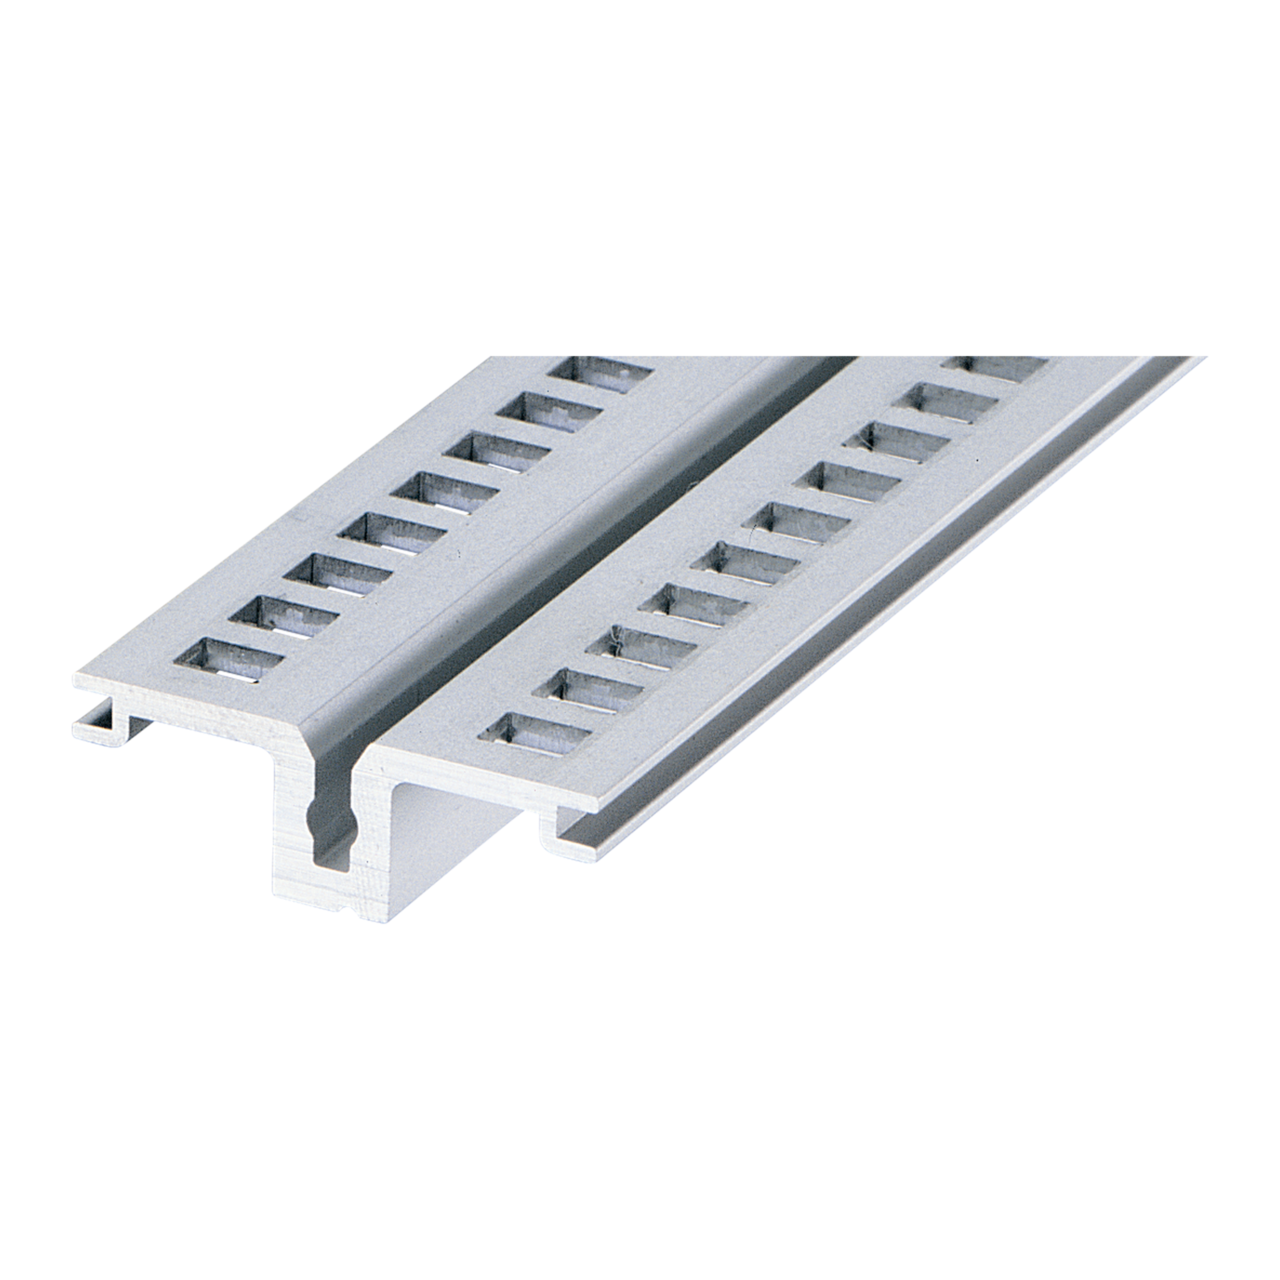 Image for Horizontal rail, center, for rear I/O, type AB from Schroff - Asia Pacific